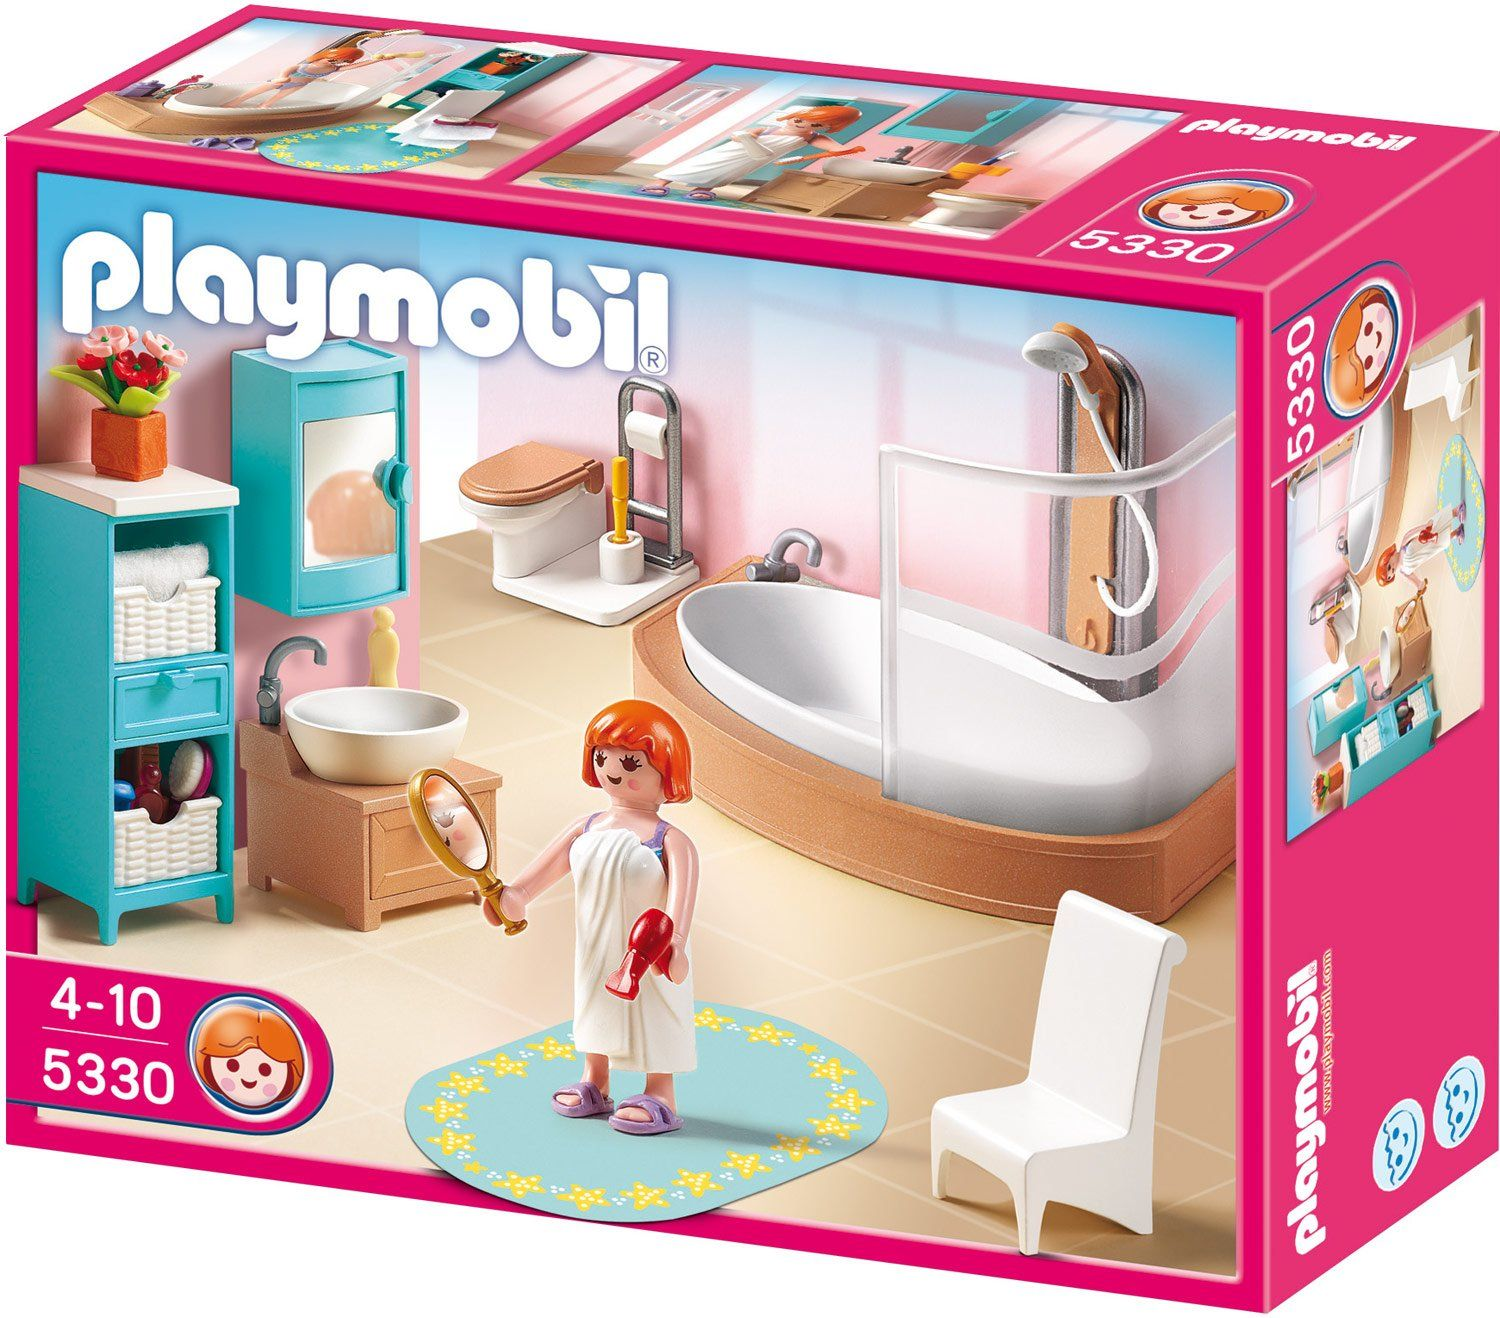 Playmobil 5330 Badezimmer Adventskalender Baby In 2020 With Images Playmobil Playmobil Sets Barbie Toys